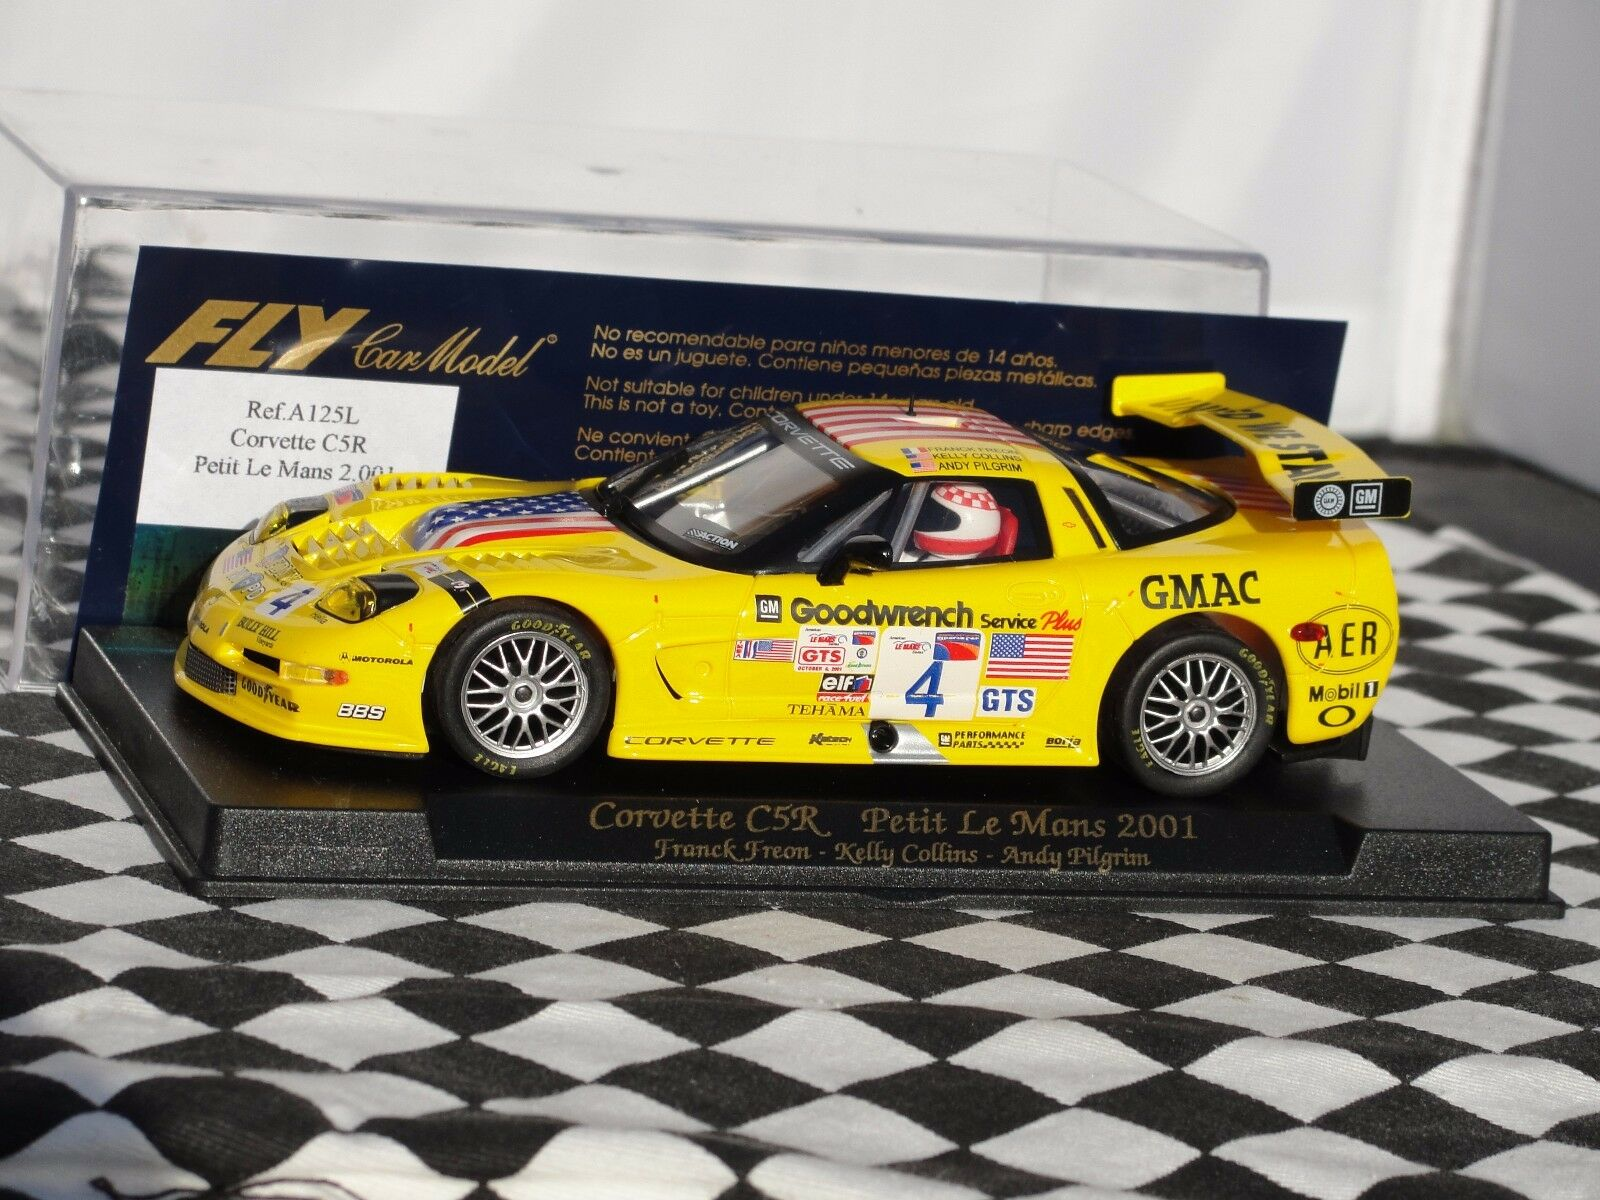 FLY CORVETTE C5R PETIT LE MANS 2001 YELLOW SLOT BNIB